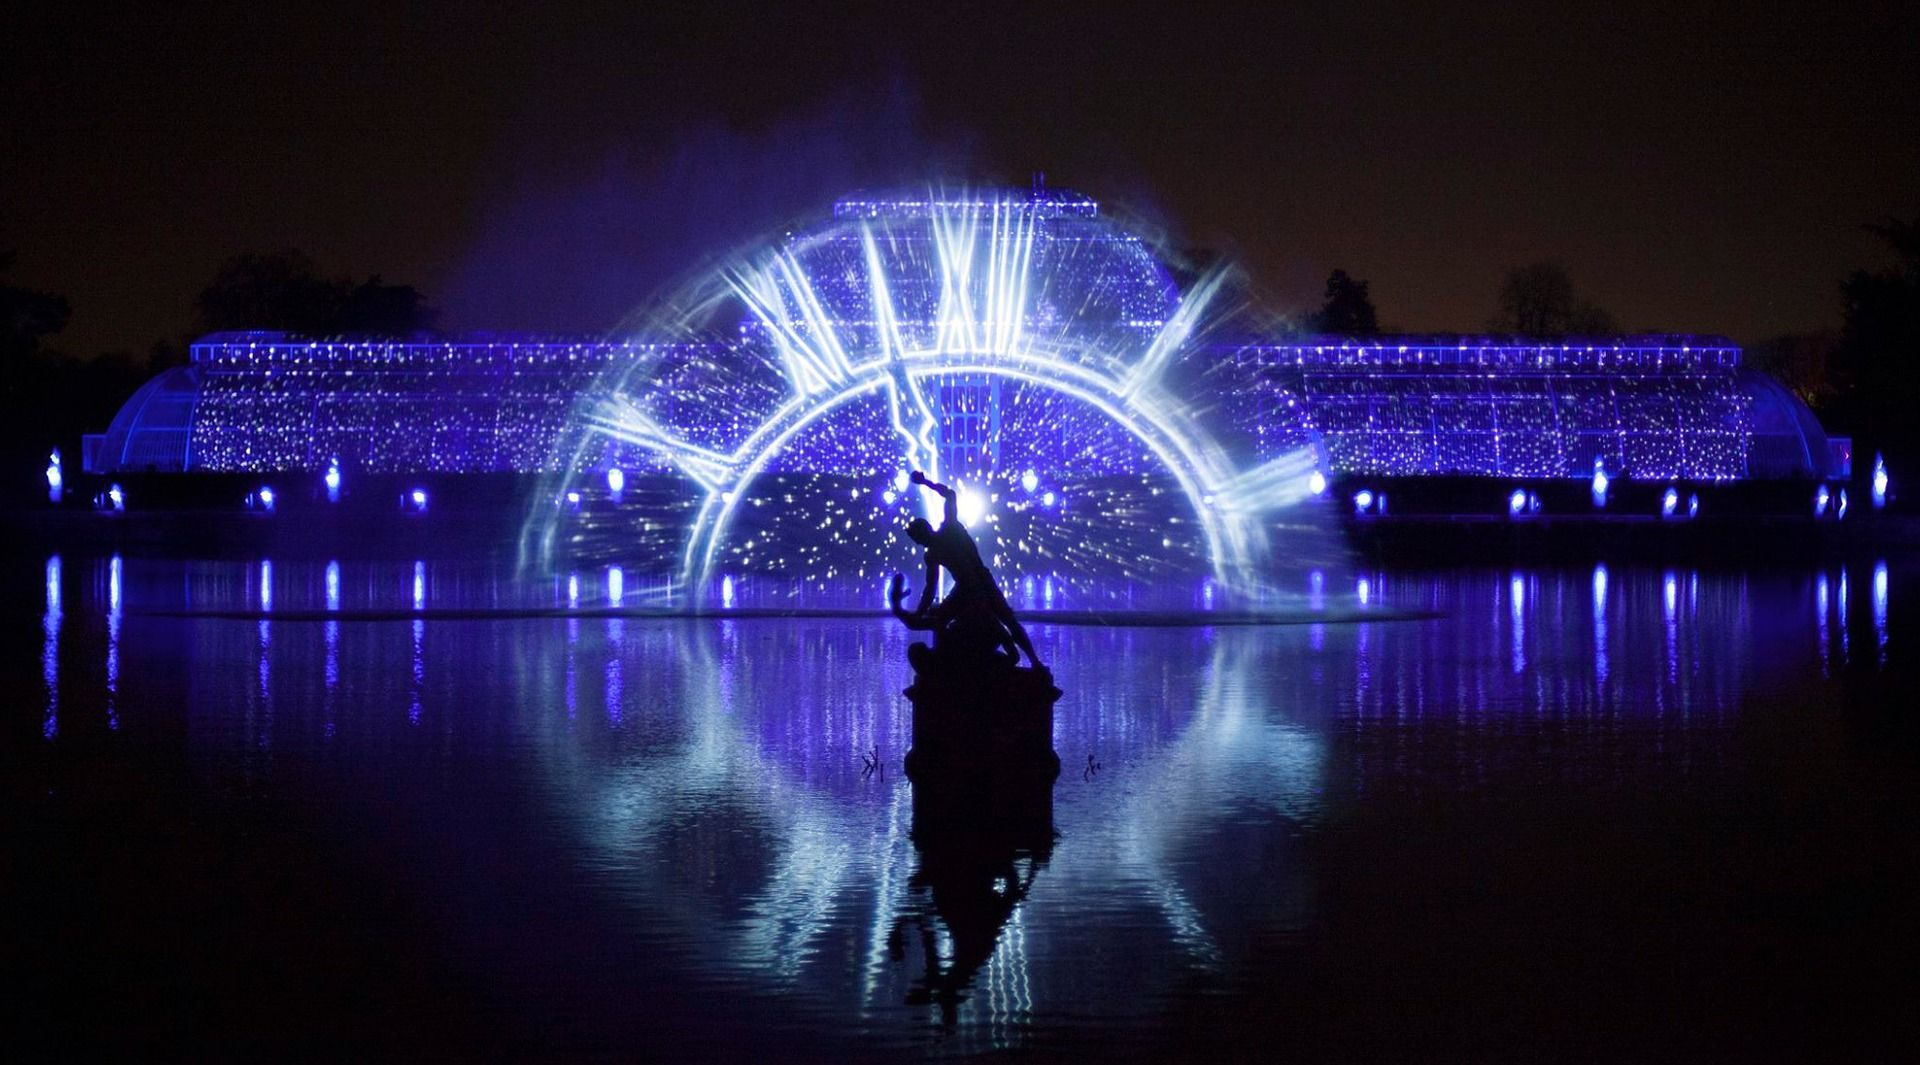 Fascinating Images Of Light And Water At The Kew Gardens In London Things To Do In London Christmas Travel London Christmas